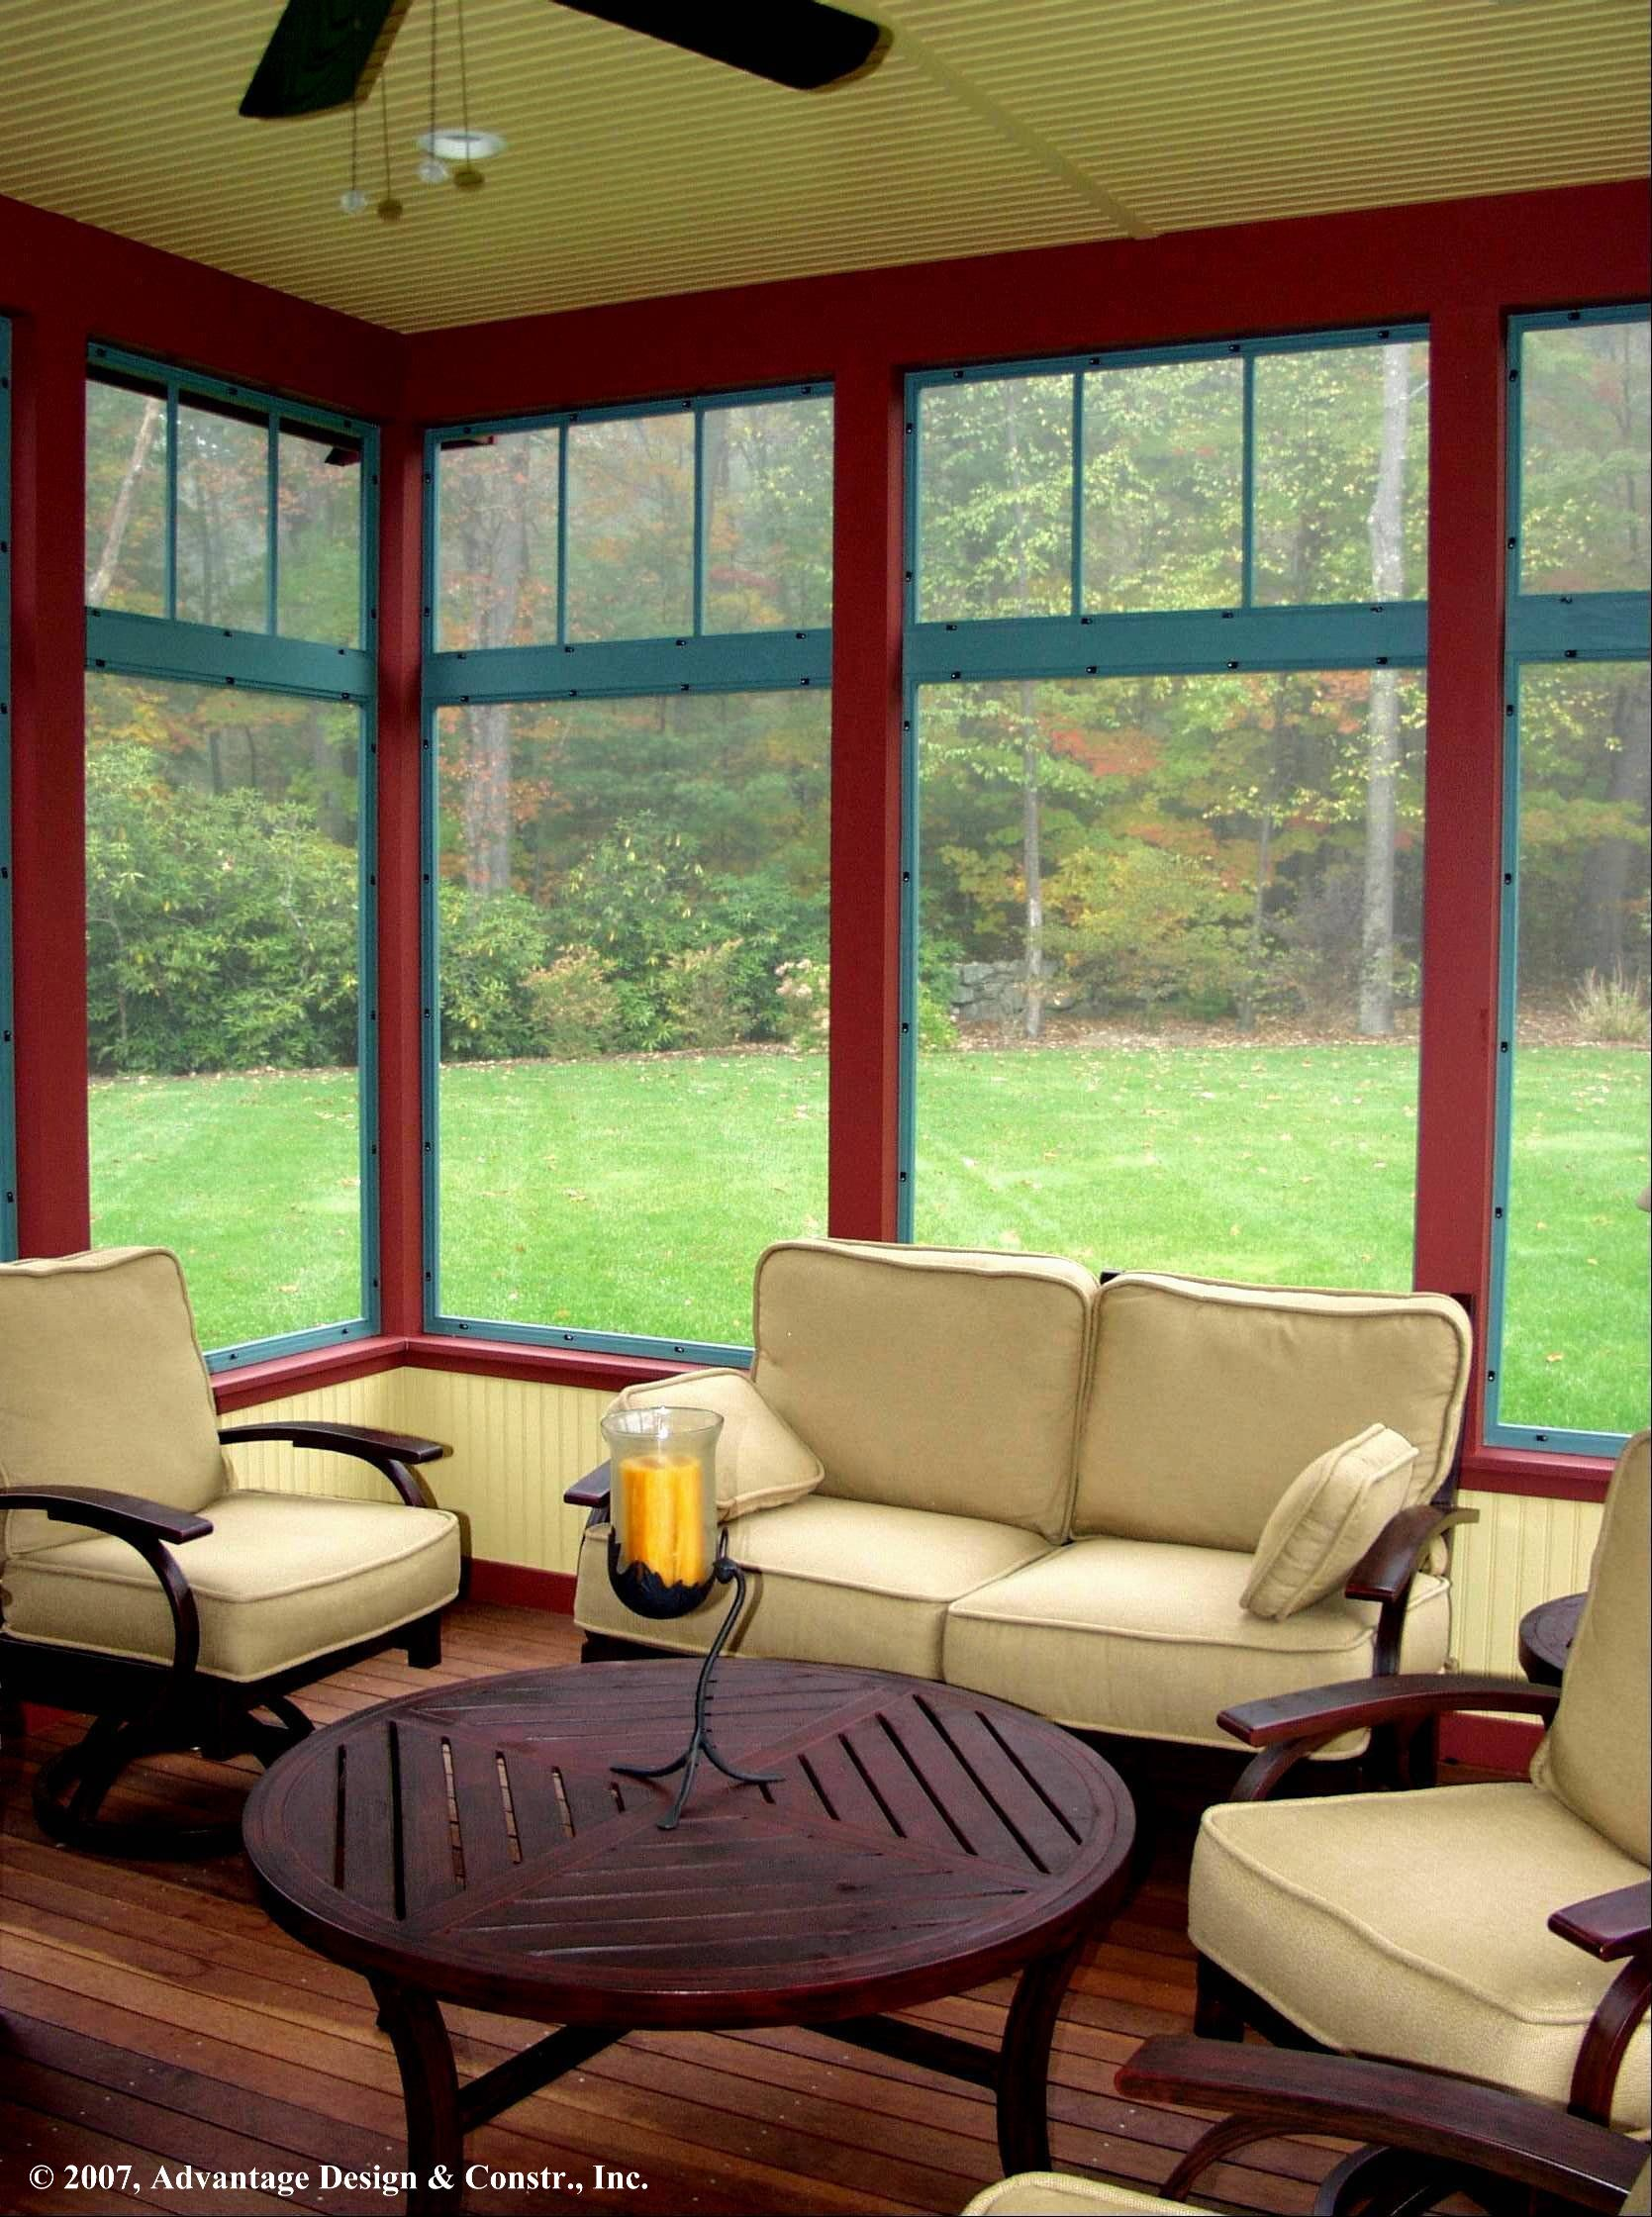 Back Porch Additions Best Ideas About Room Additions On House Additions Interior Designs: Wood-frame Windows Enclose The Front Porch Of The Columbia County, New York, Cottage Shared By